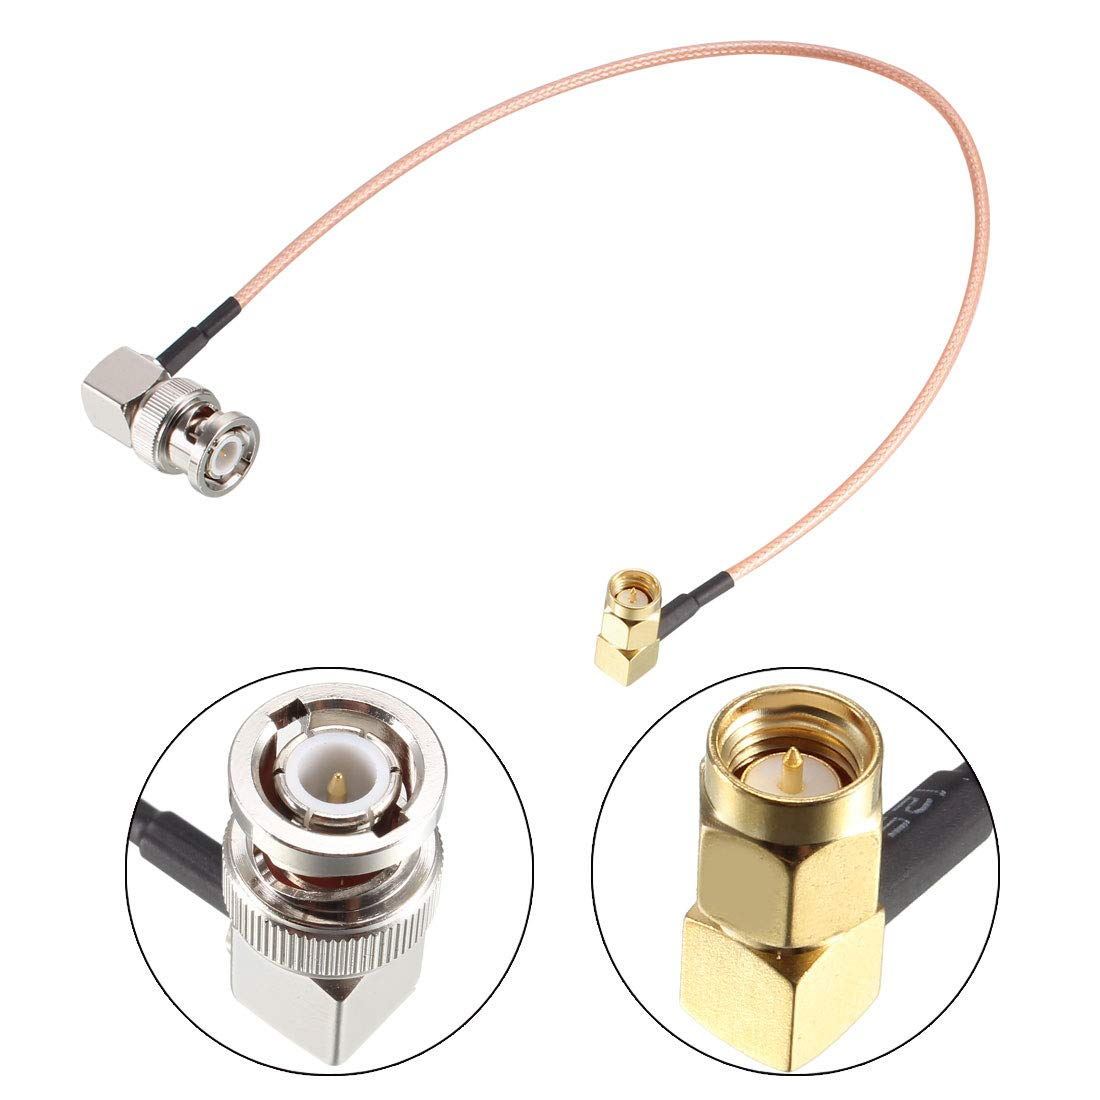 uxcell BNC Male Right Angle to SMA Male Right Angle RG316 Coax Cable 50 Ohm 1-feet